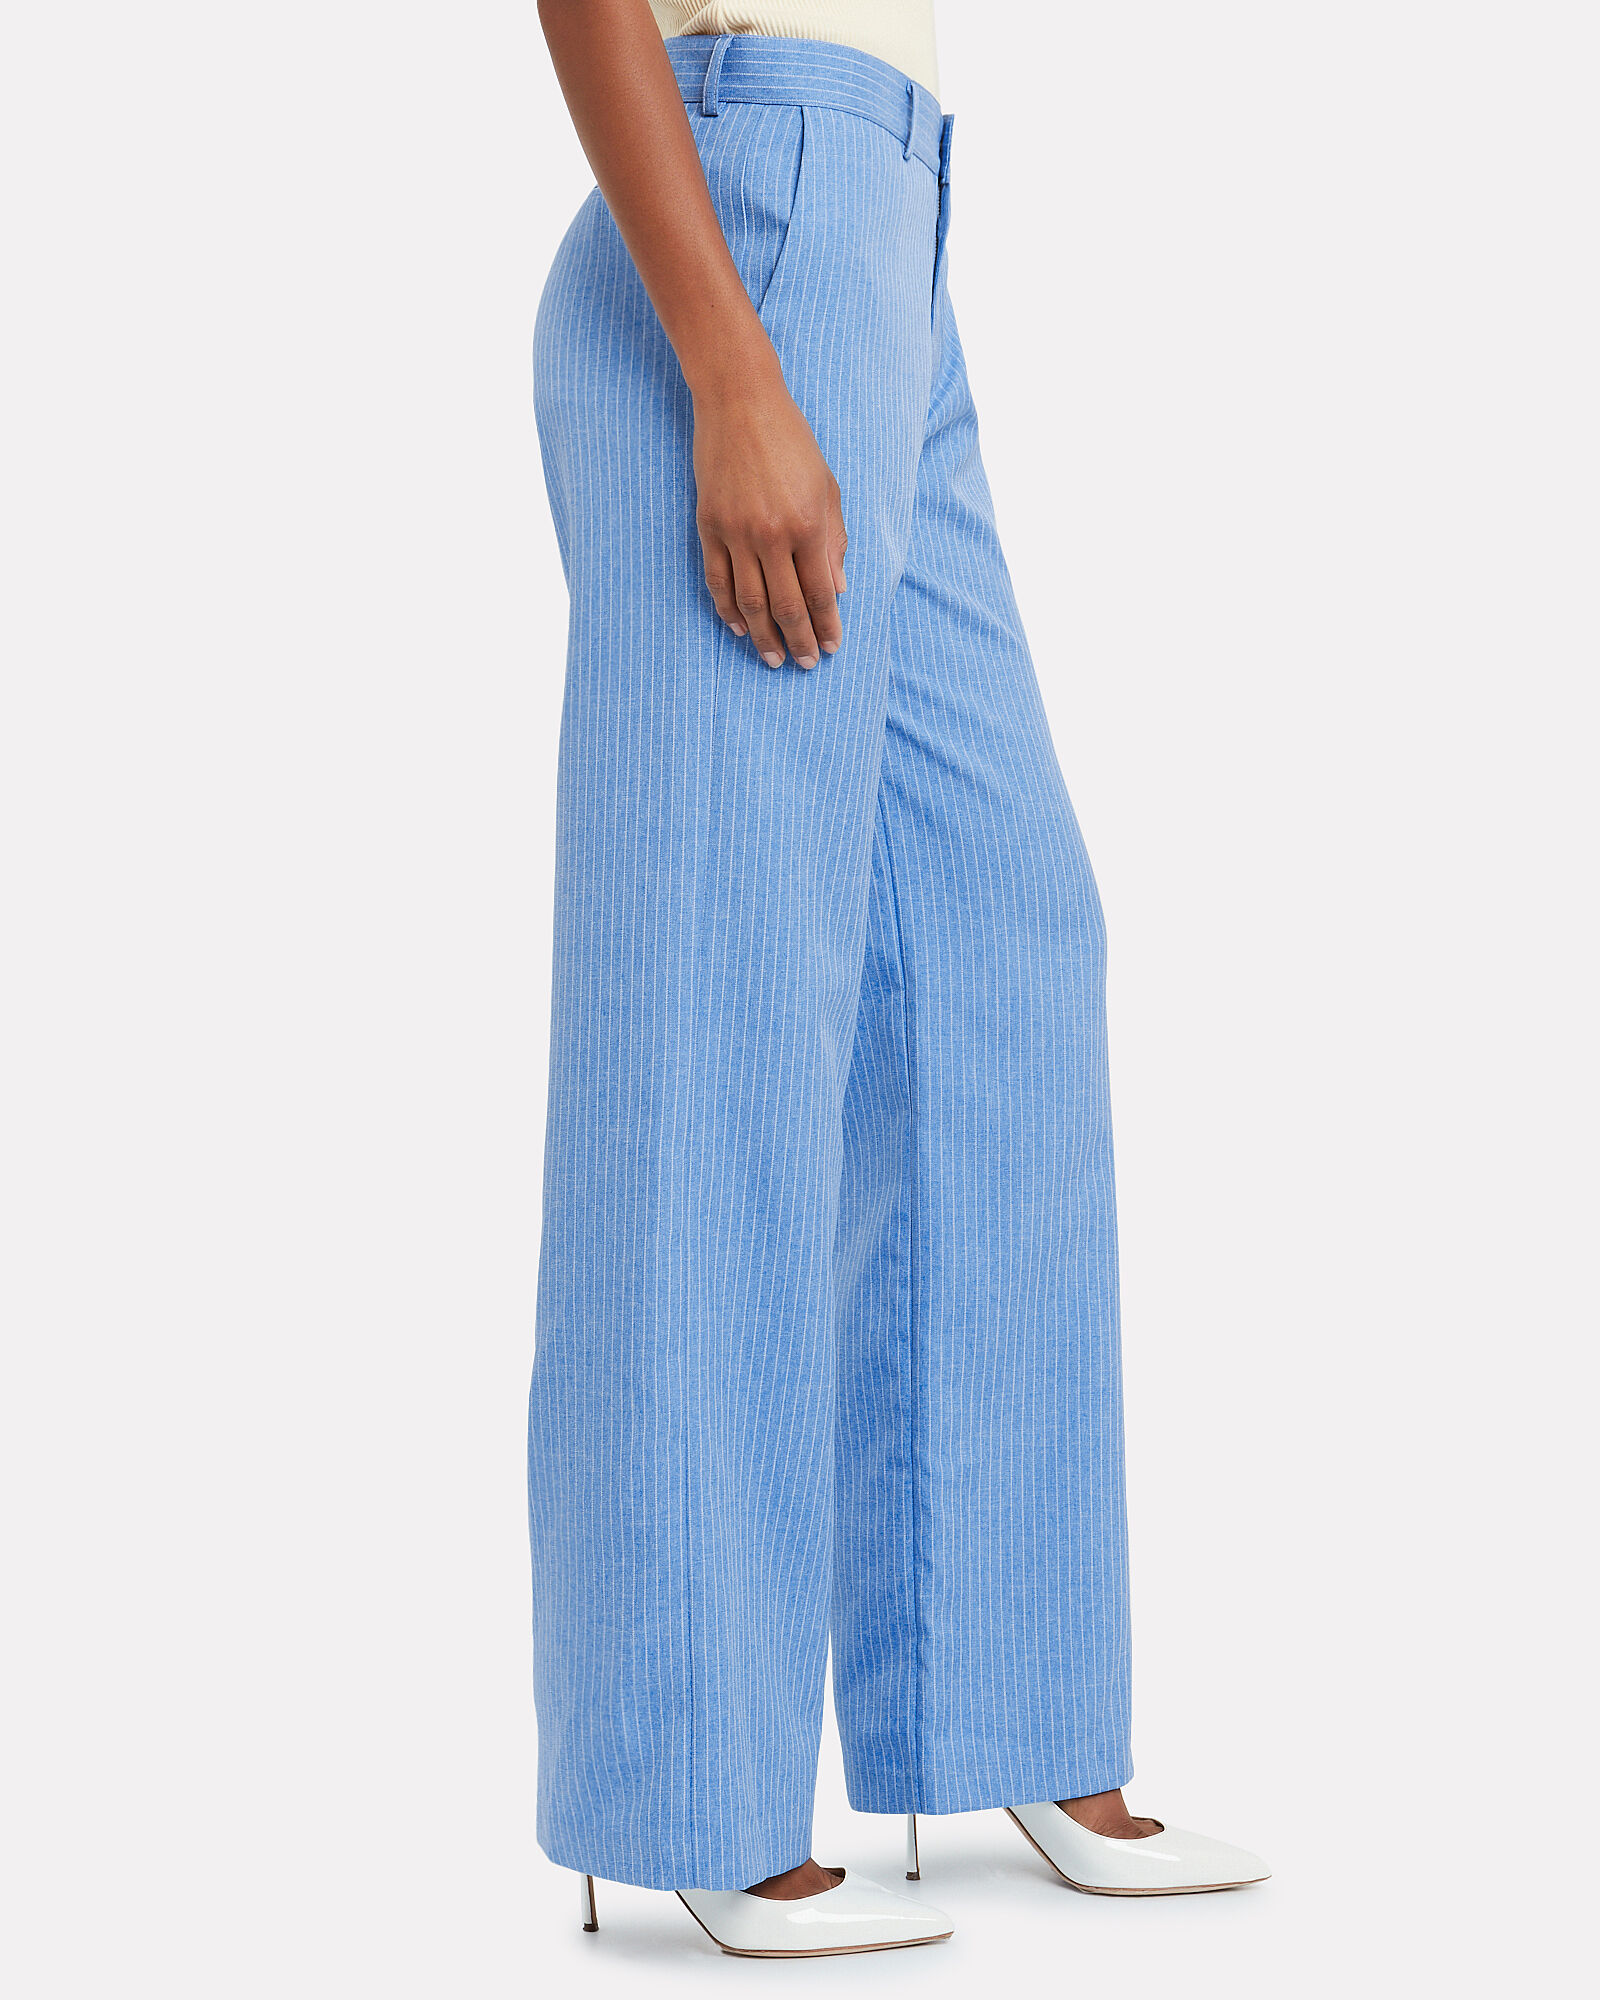 Go Getter Straight Leg Pants, BLUE-LT, hi-res